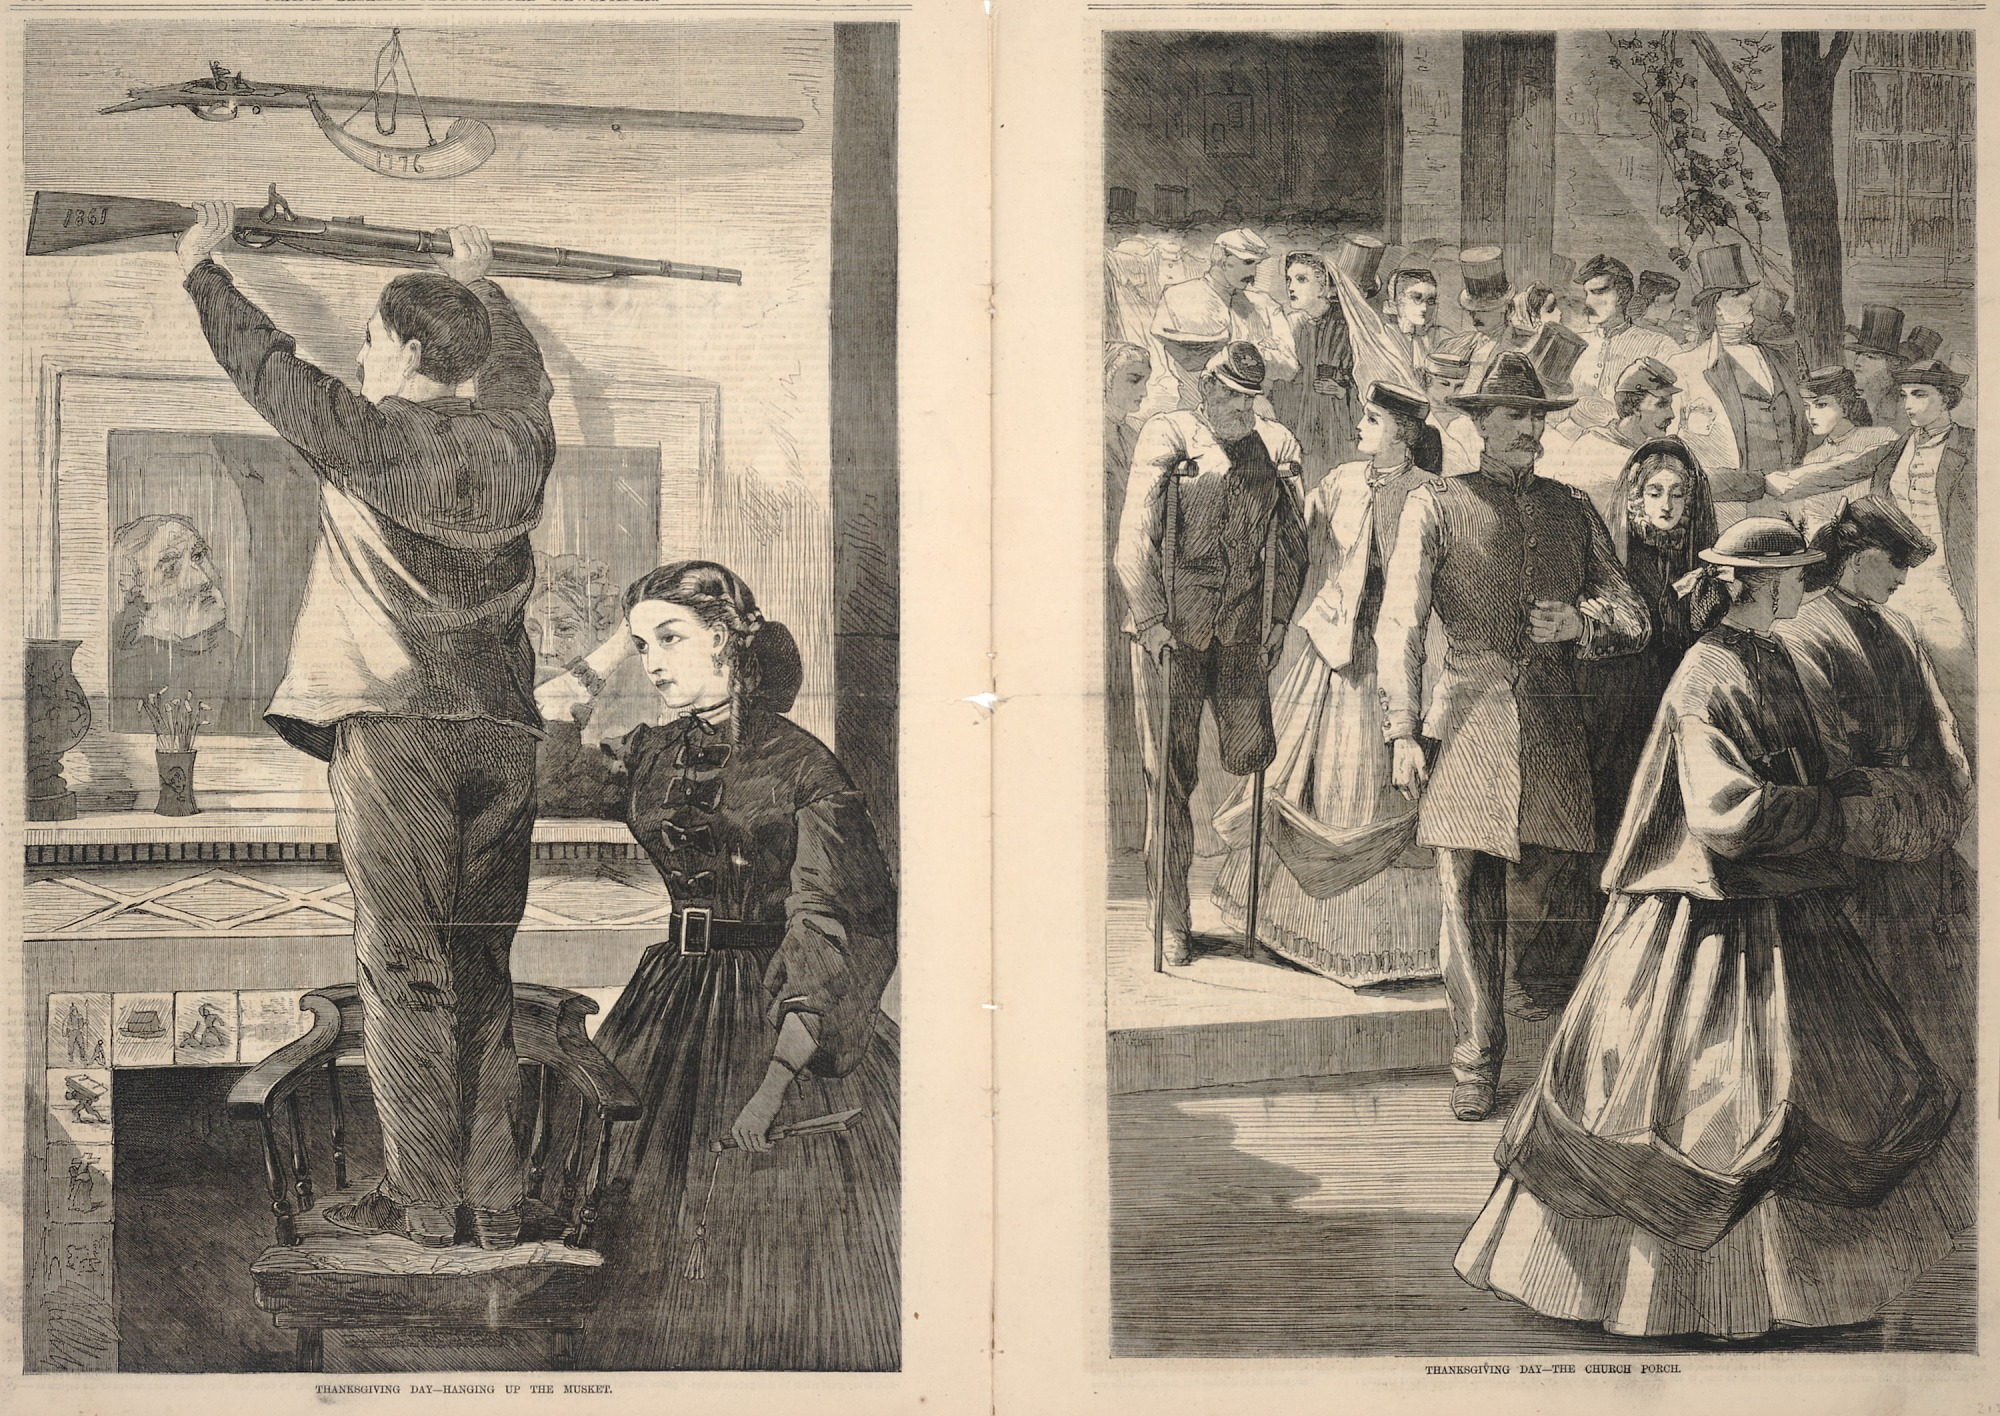 images for Thanksgiving Day--Hanging up the Musket/Thanksgiving Day--The Church Porch, from Frank Leslie's Illustrated Newspaper, December 23, 1865